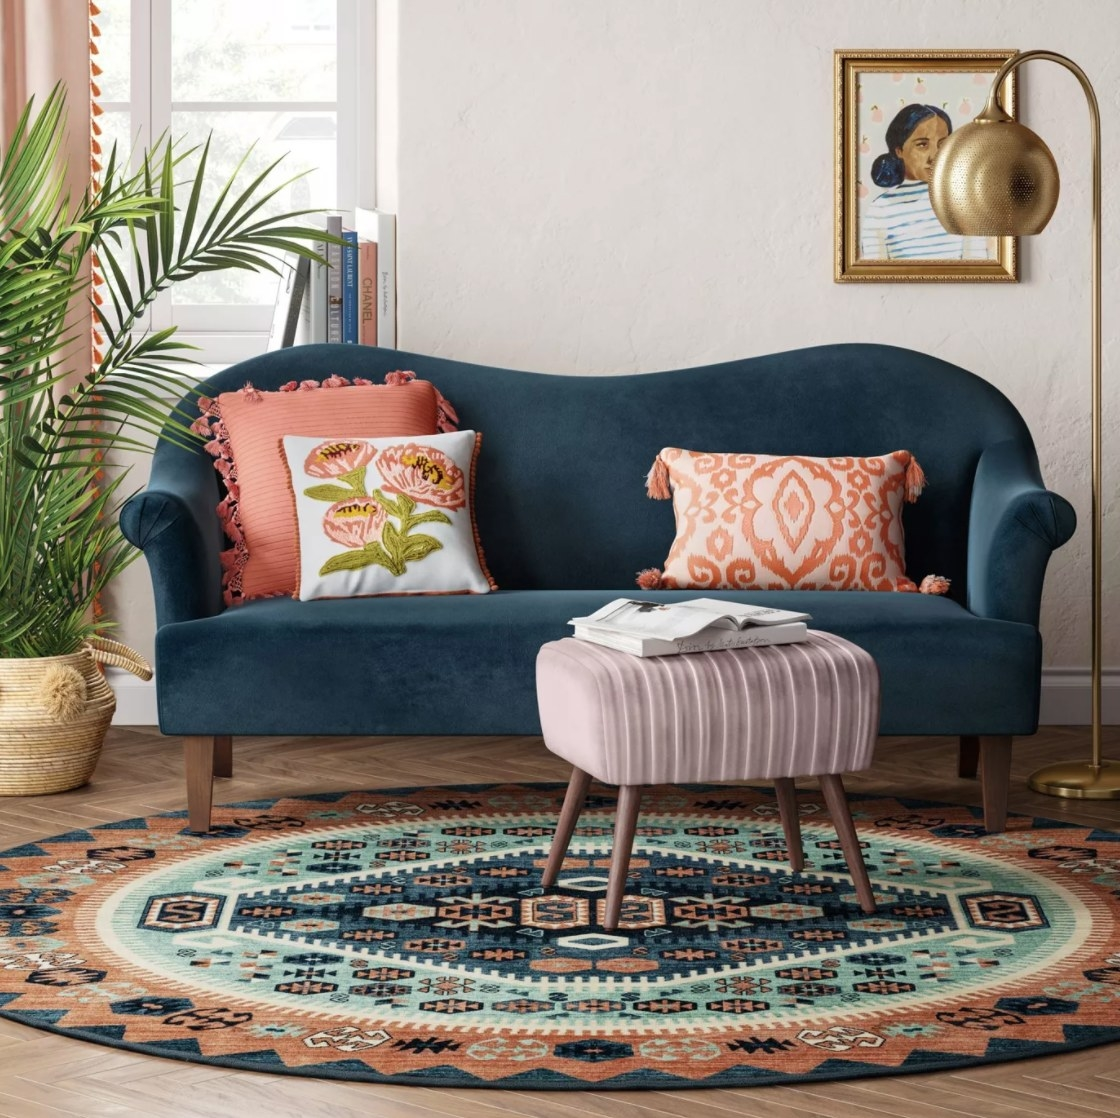 The teal, navy, and coral circular area rug